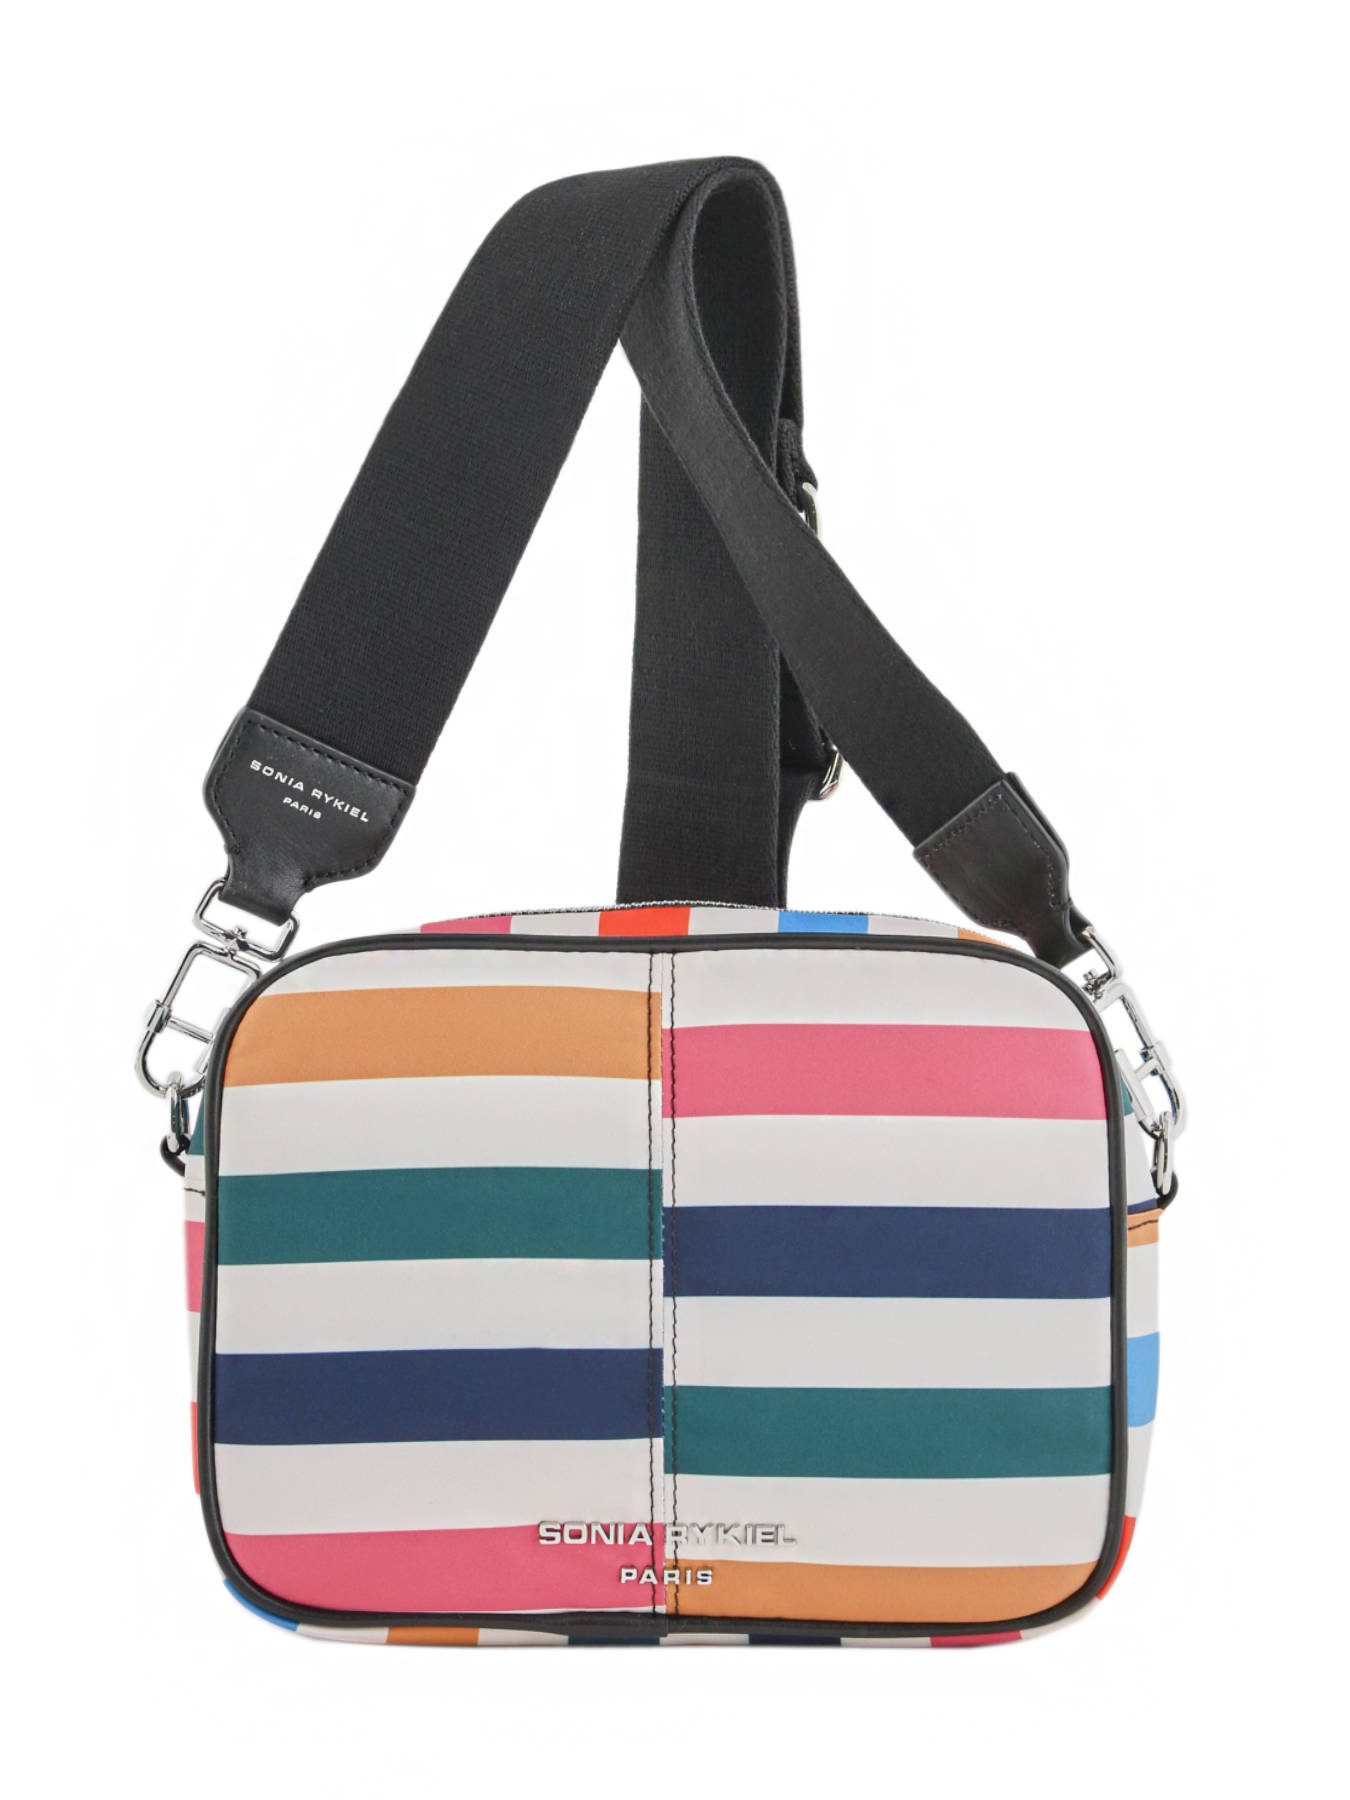 0773ddb0cd ... Crossbody Bag Sonia rykiel Multicolor forever nylon 2164-38 ...